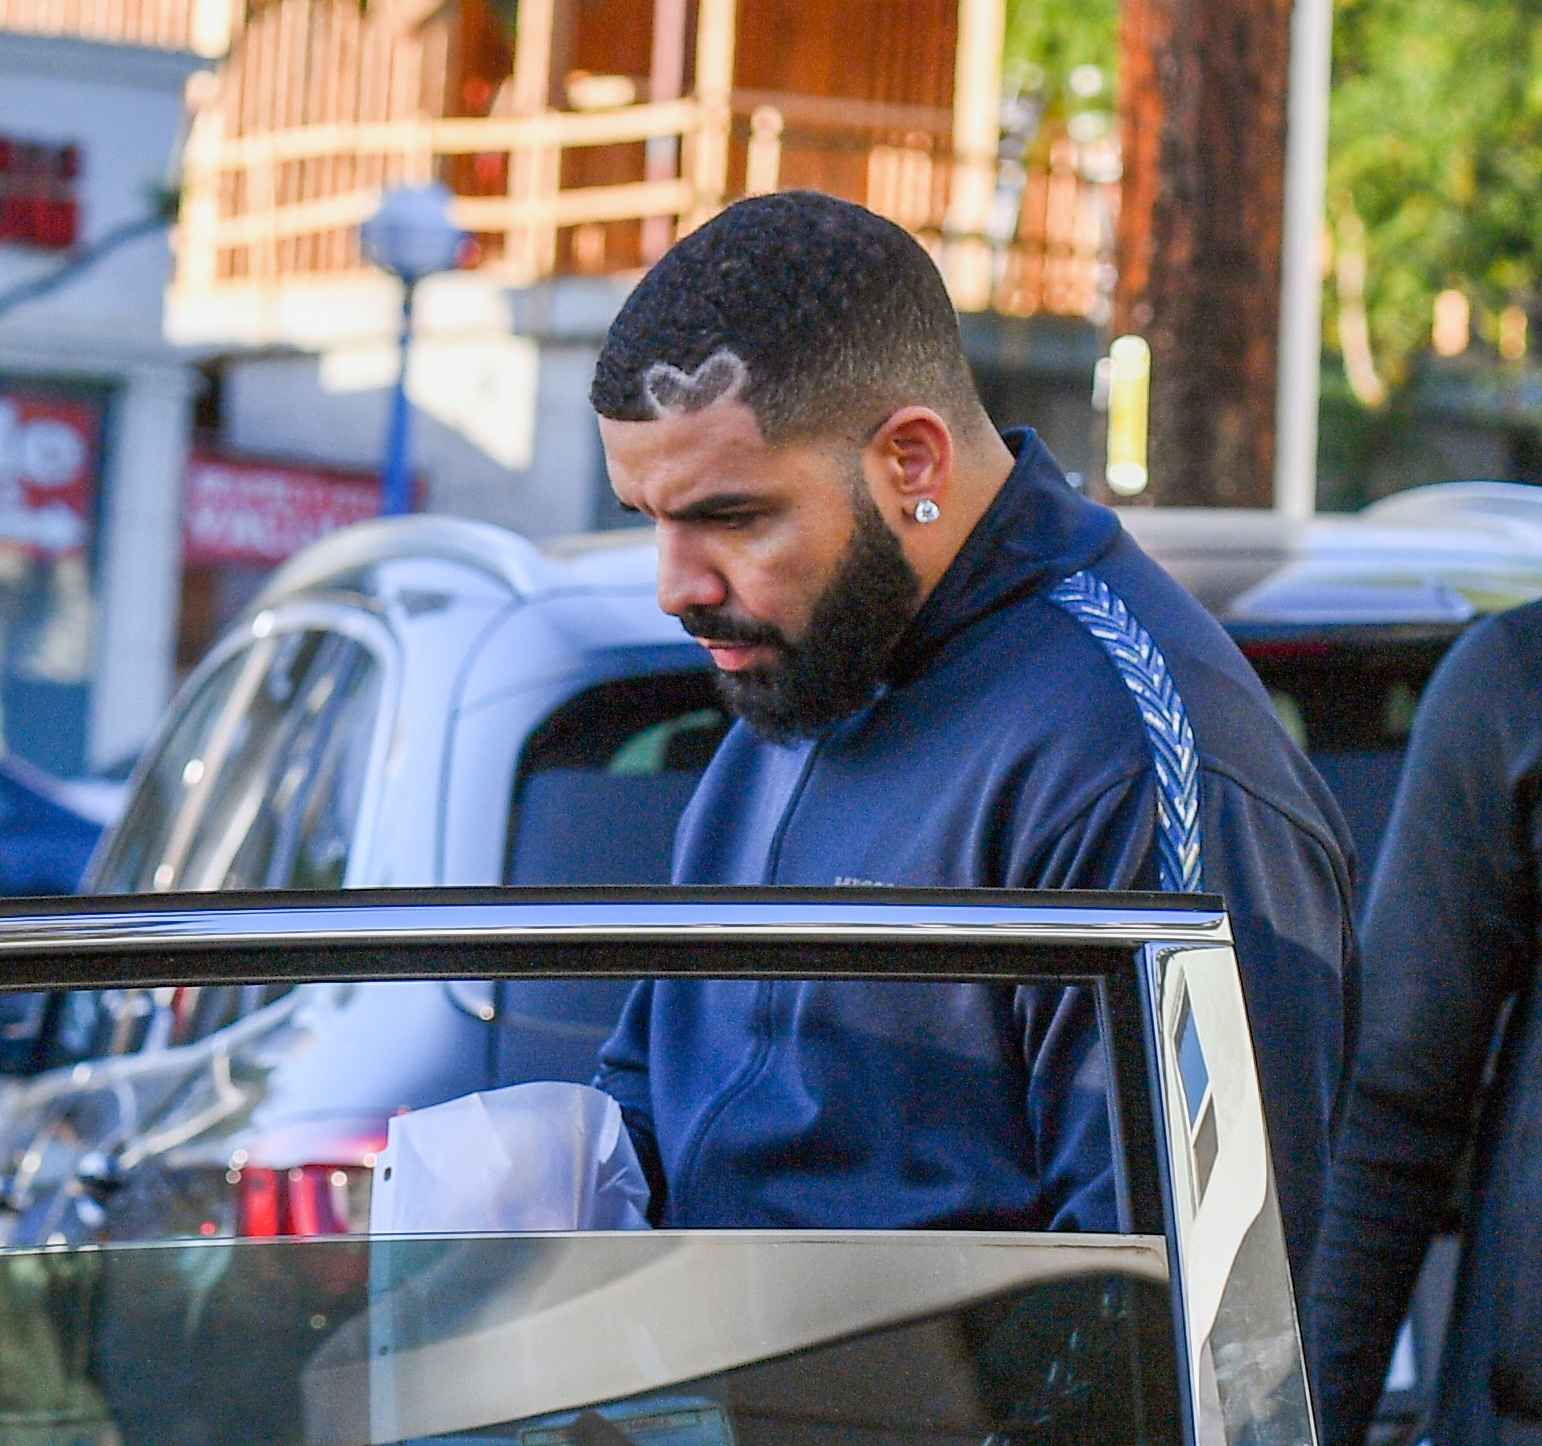 Drake and Social Media Troll TravQue Get Into a Hilarious Dustup at the Bar While Arguing Over Tab